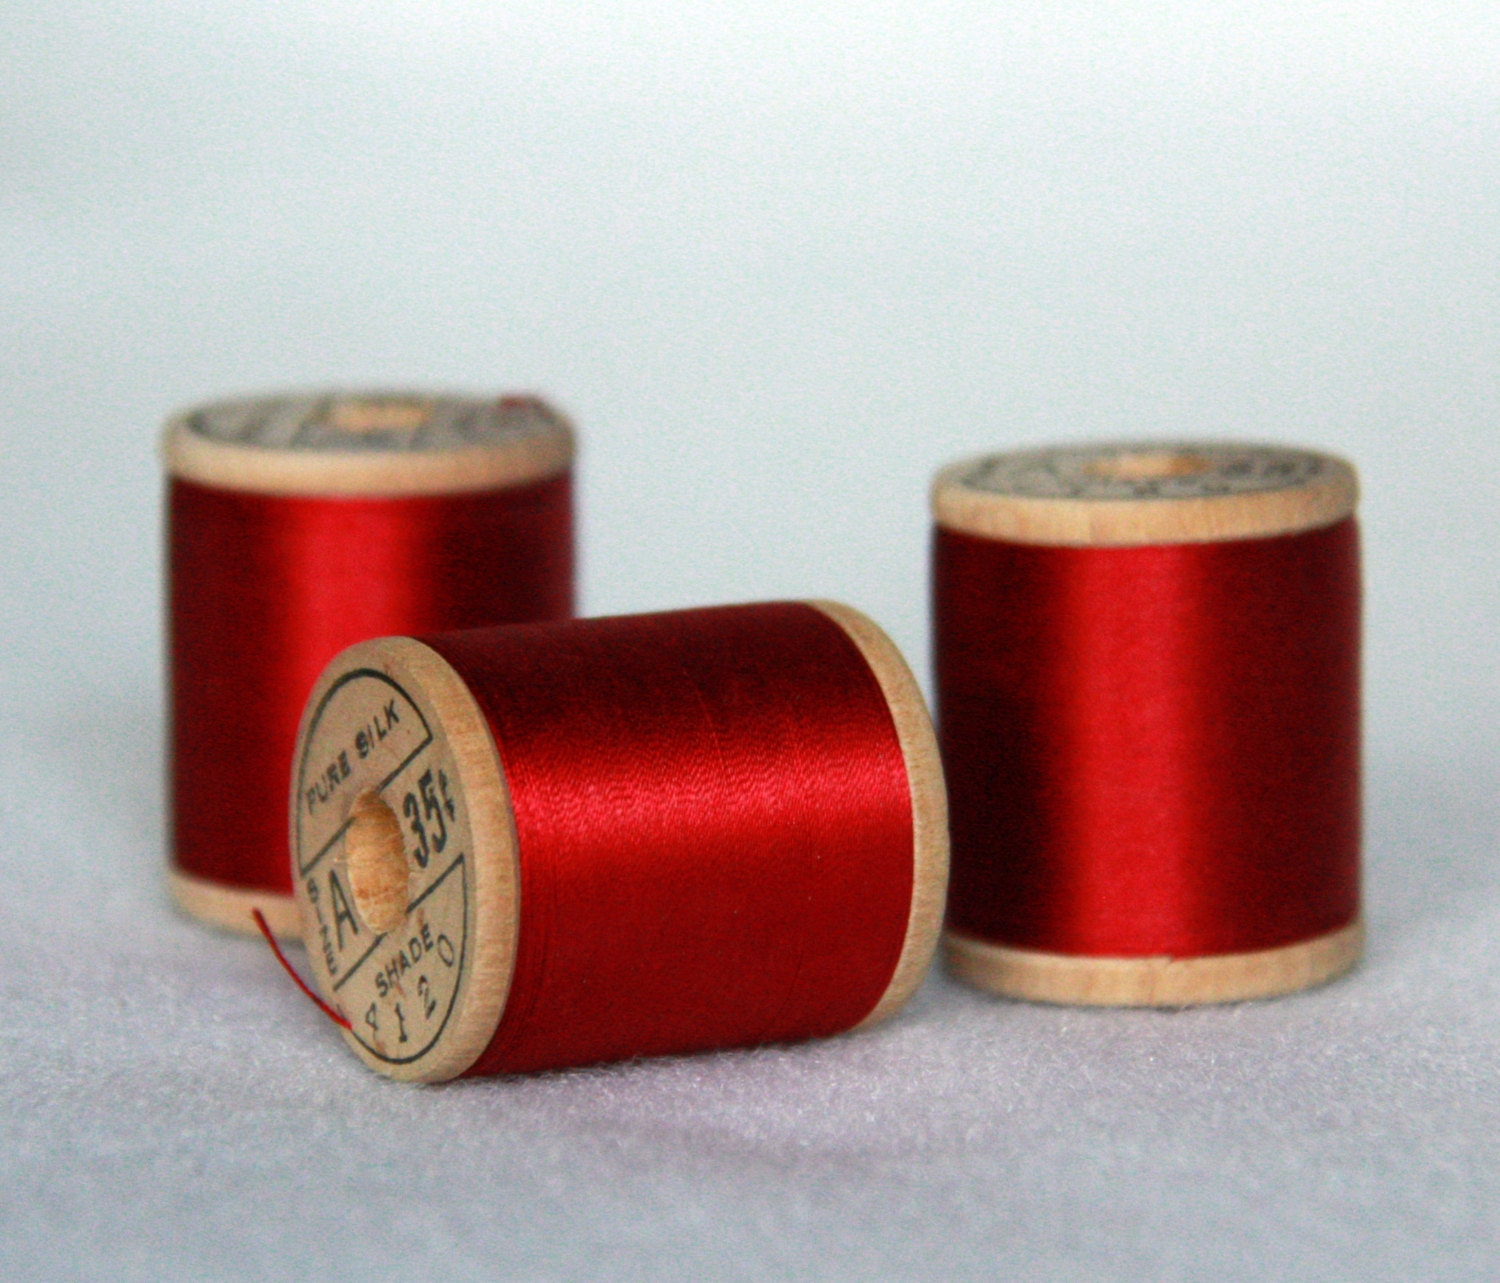 Vintage Silk Thread - Belding Corticelli - Red Embroidery Thread - Three Full Spools 100 Yards Each - BarefootBits